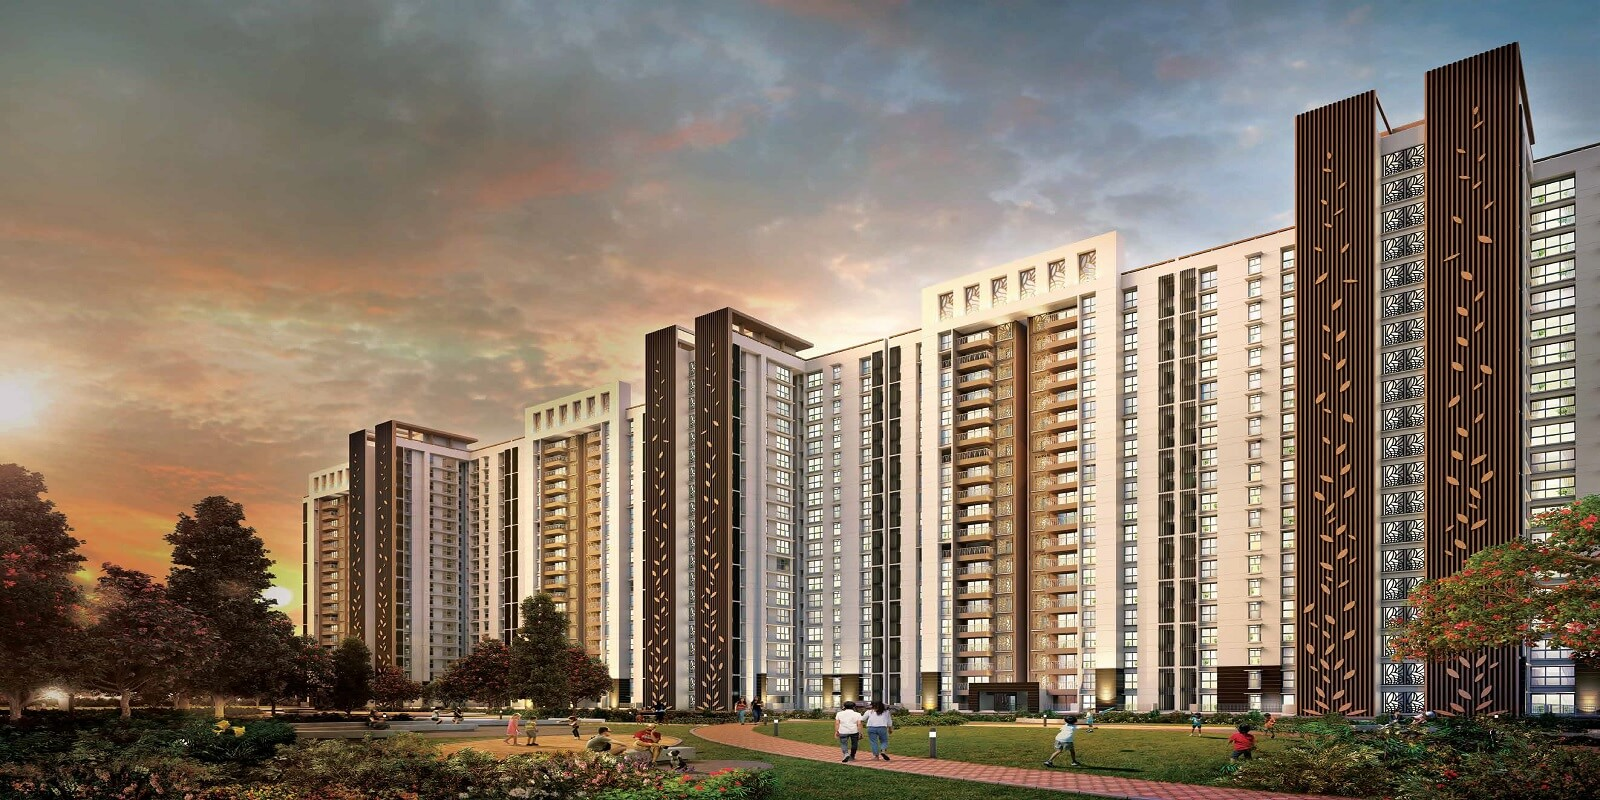 lodha upper thane treetops a to f and c1 c2 project large image2